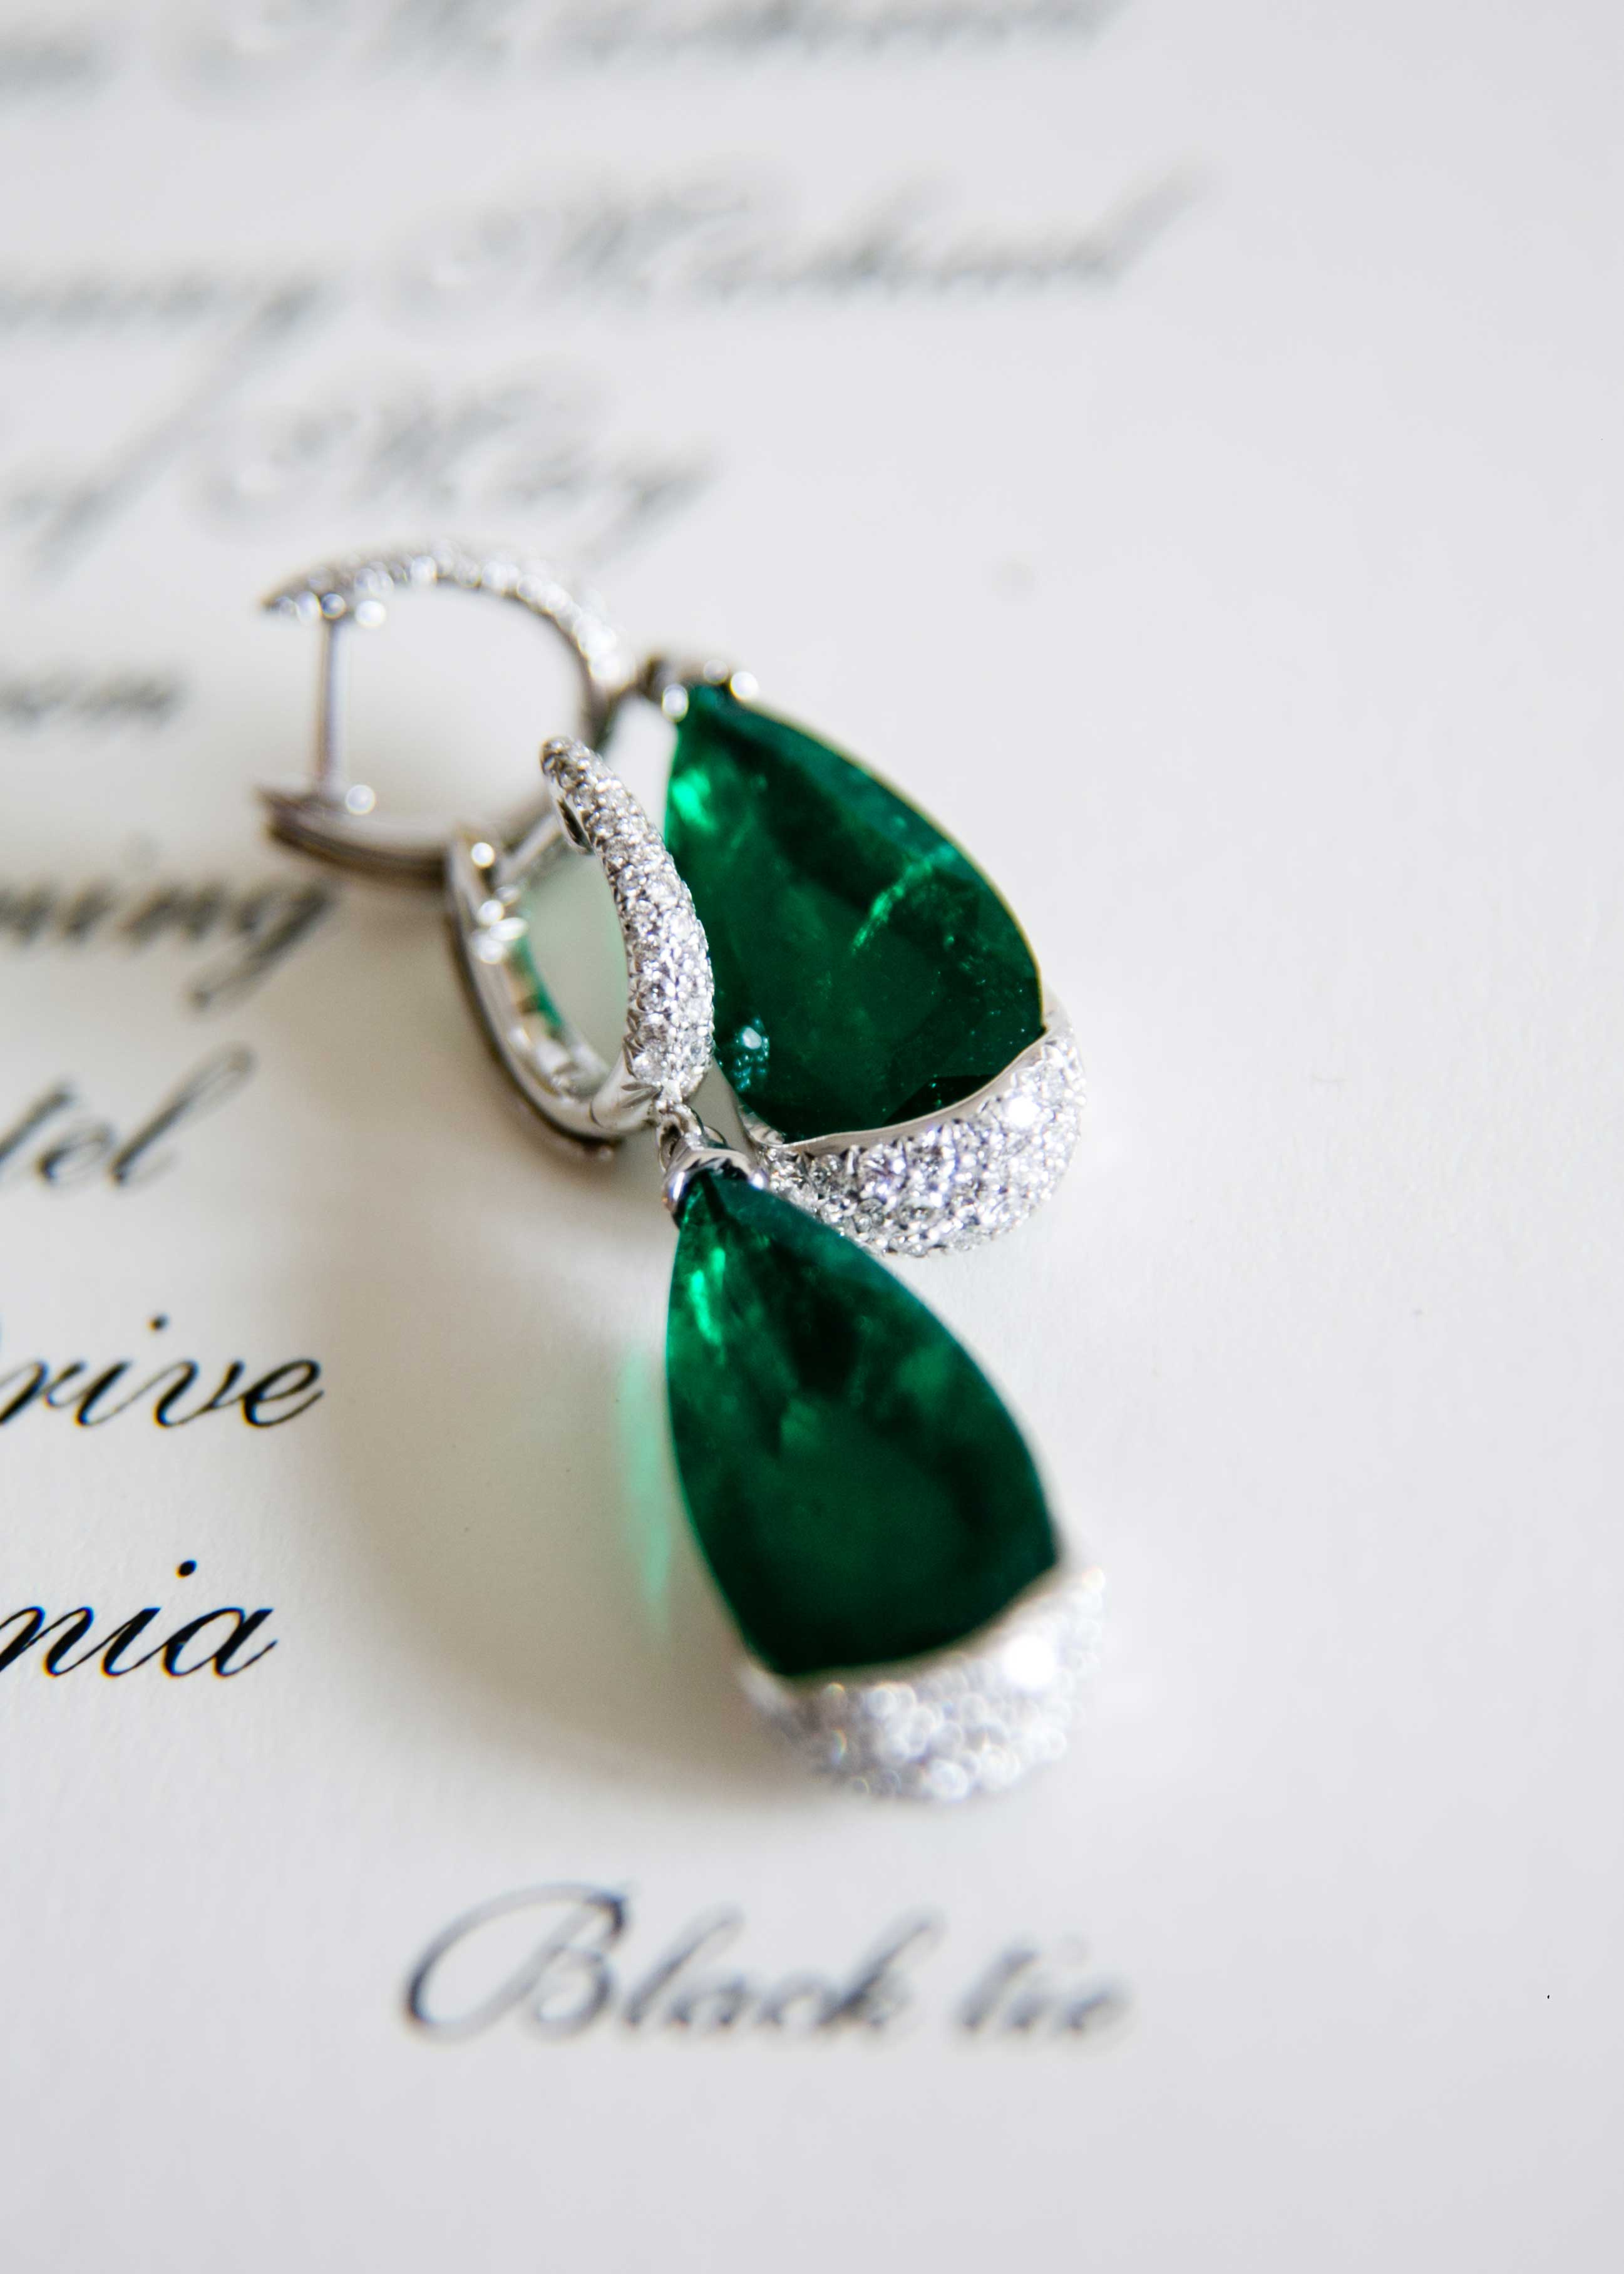 Emerald and diamond earrings jewelry wedding detail shots